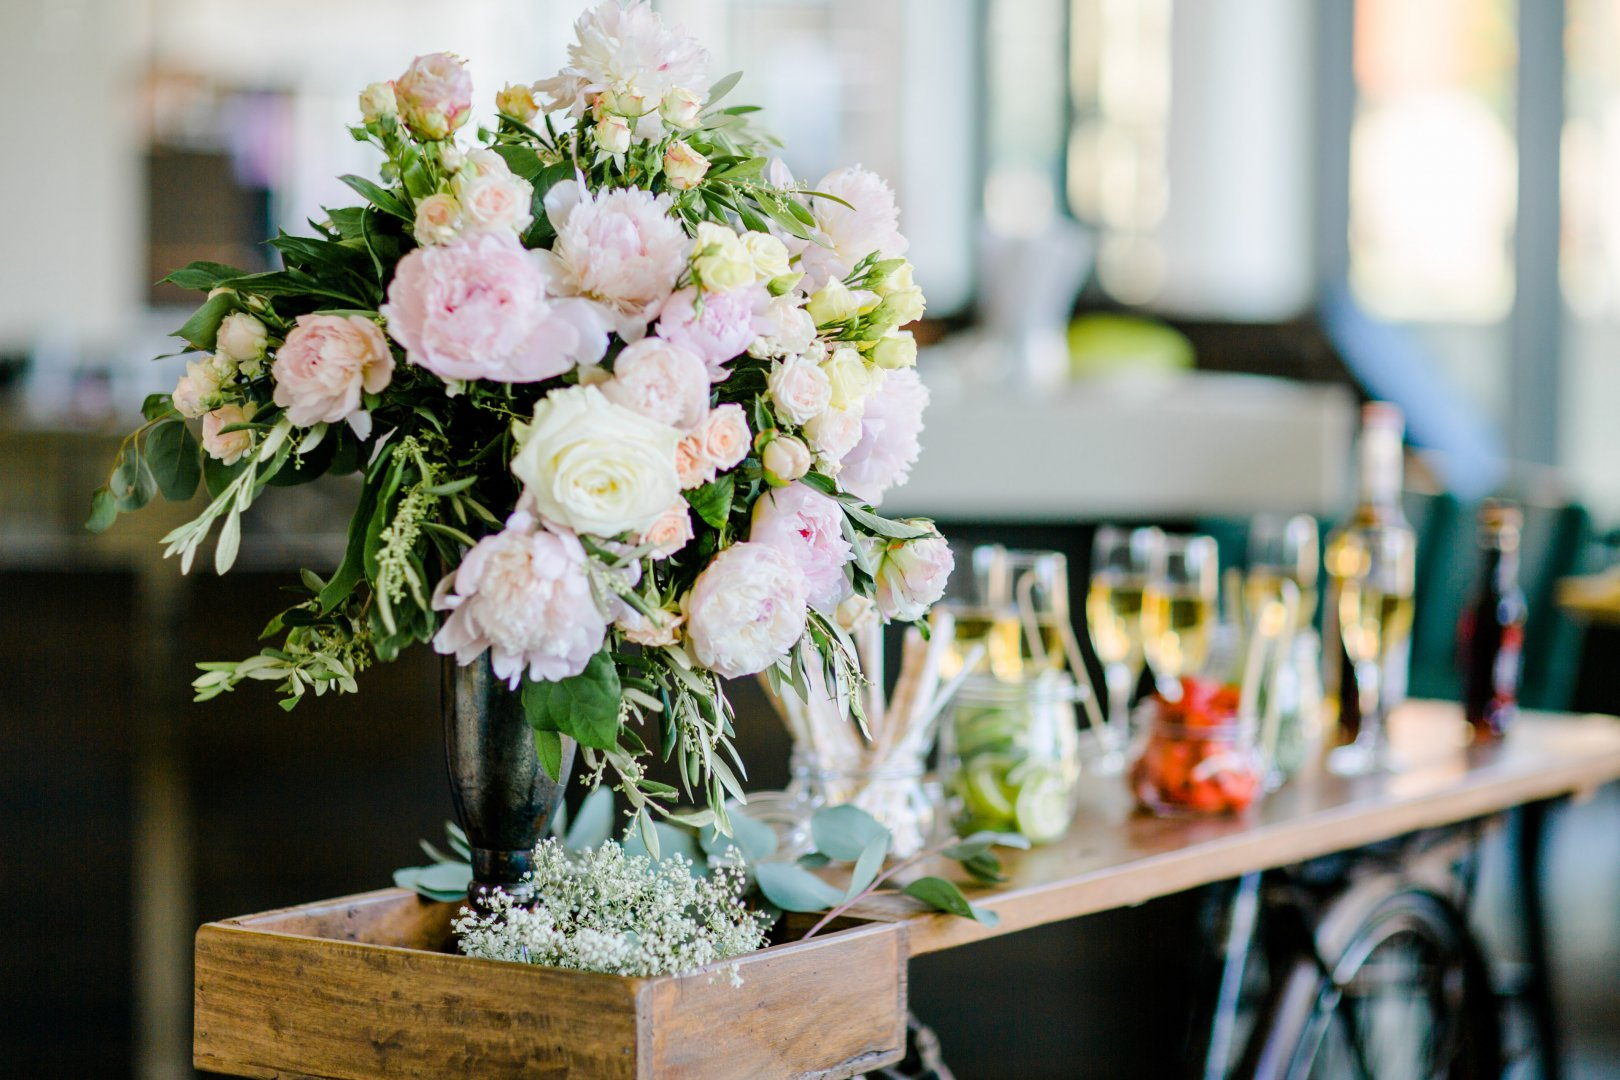 Flower Flower Arranging Floristry Photograph Bouquet Floral design Centrepiece Pink Cut flowers Plant Garden roses Artificial flower Rose Spring Petal Table Wedding reception Rose family Wildflower Peach Ceremony Rehearsal dinner Peony Interior design Art Tableware Party Wedding Building Rose order